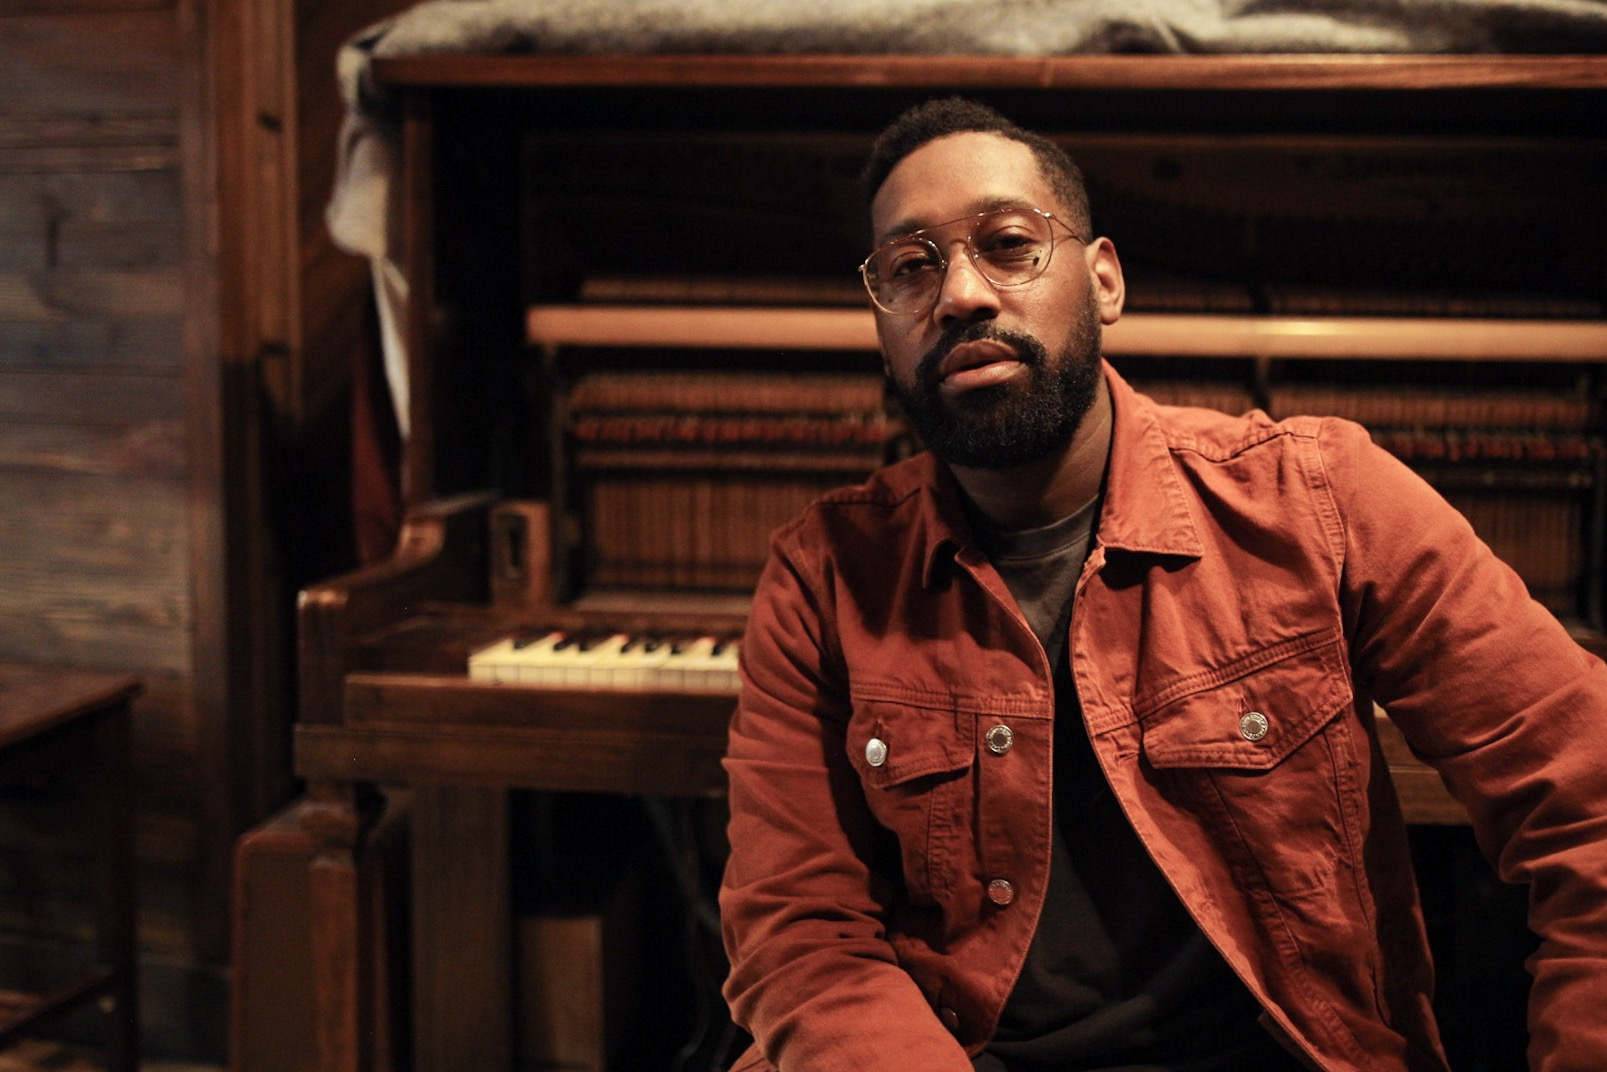 Grammy Winner PJ Morton Will Celebrate His Birthday With An Instagram Concert Sunday, March 29 @ 7 PM ET (6 PM CT/4 PM PT)